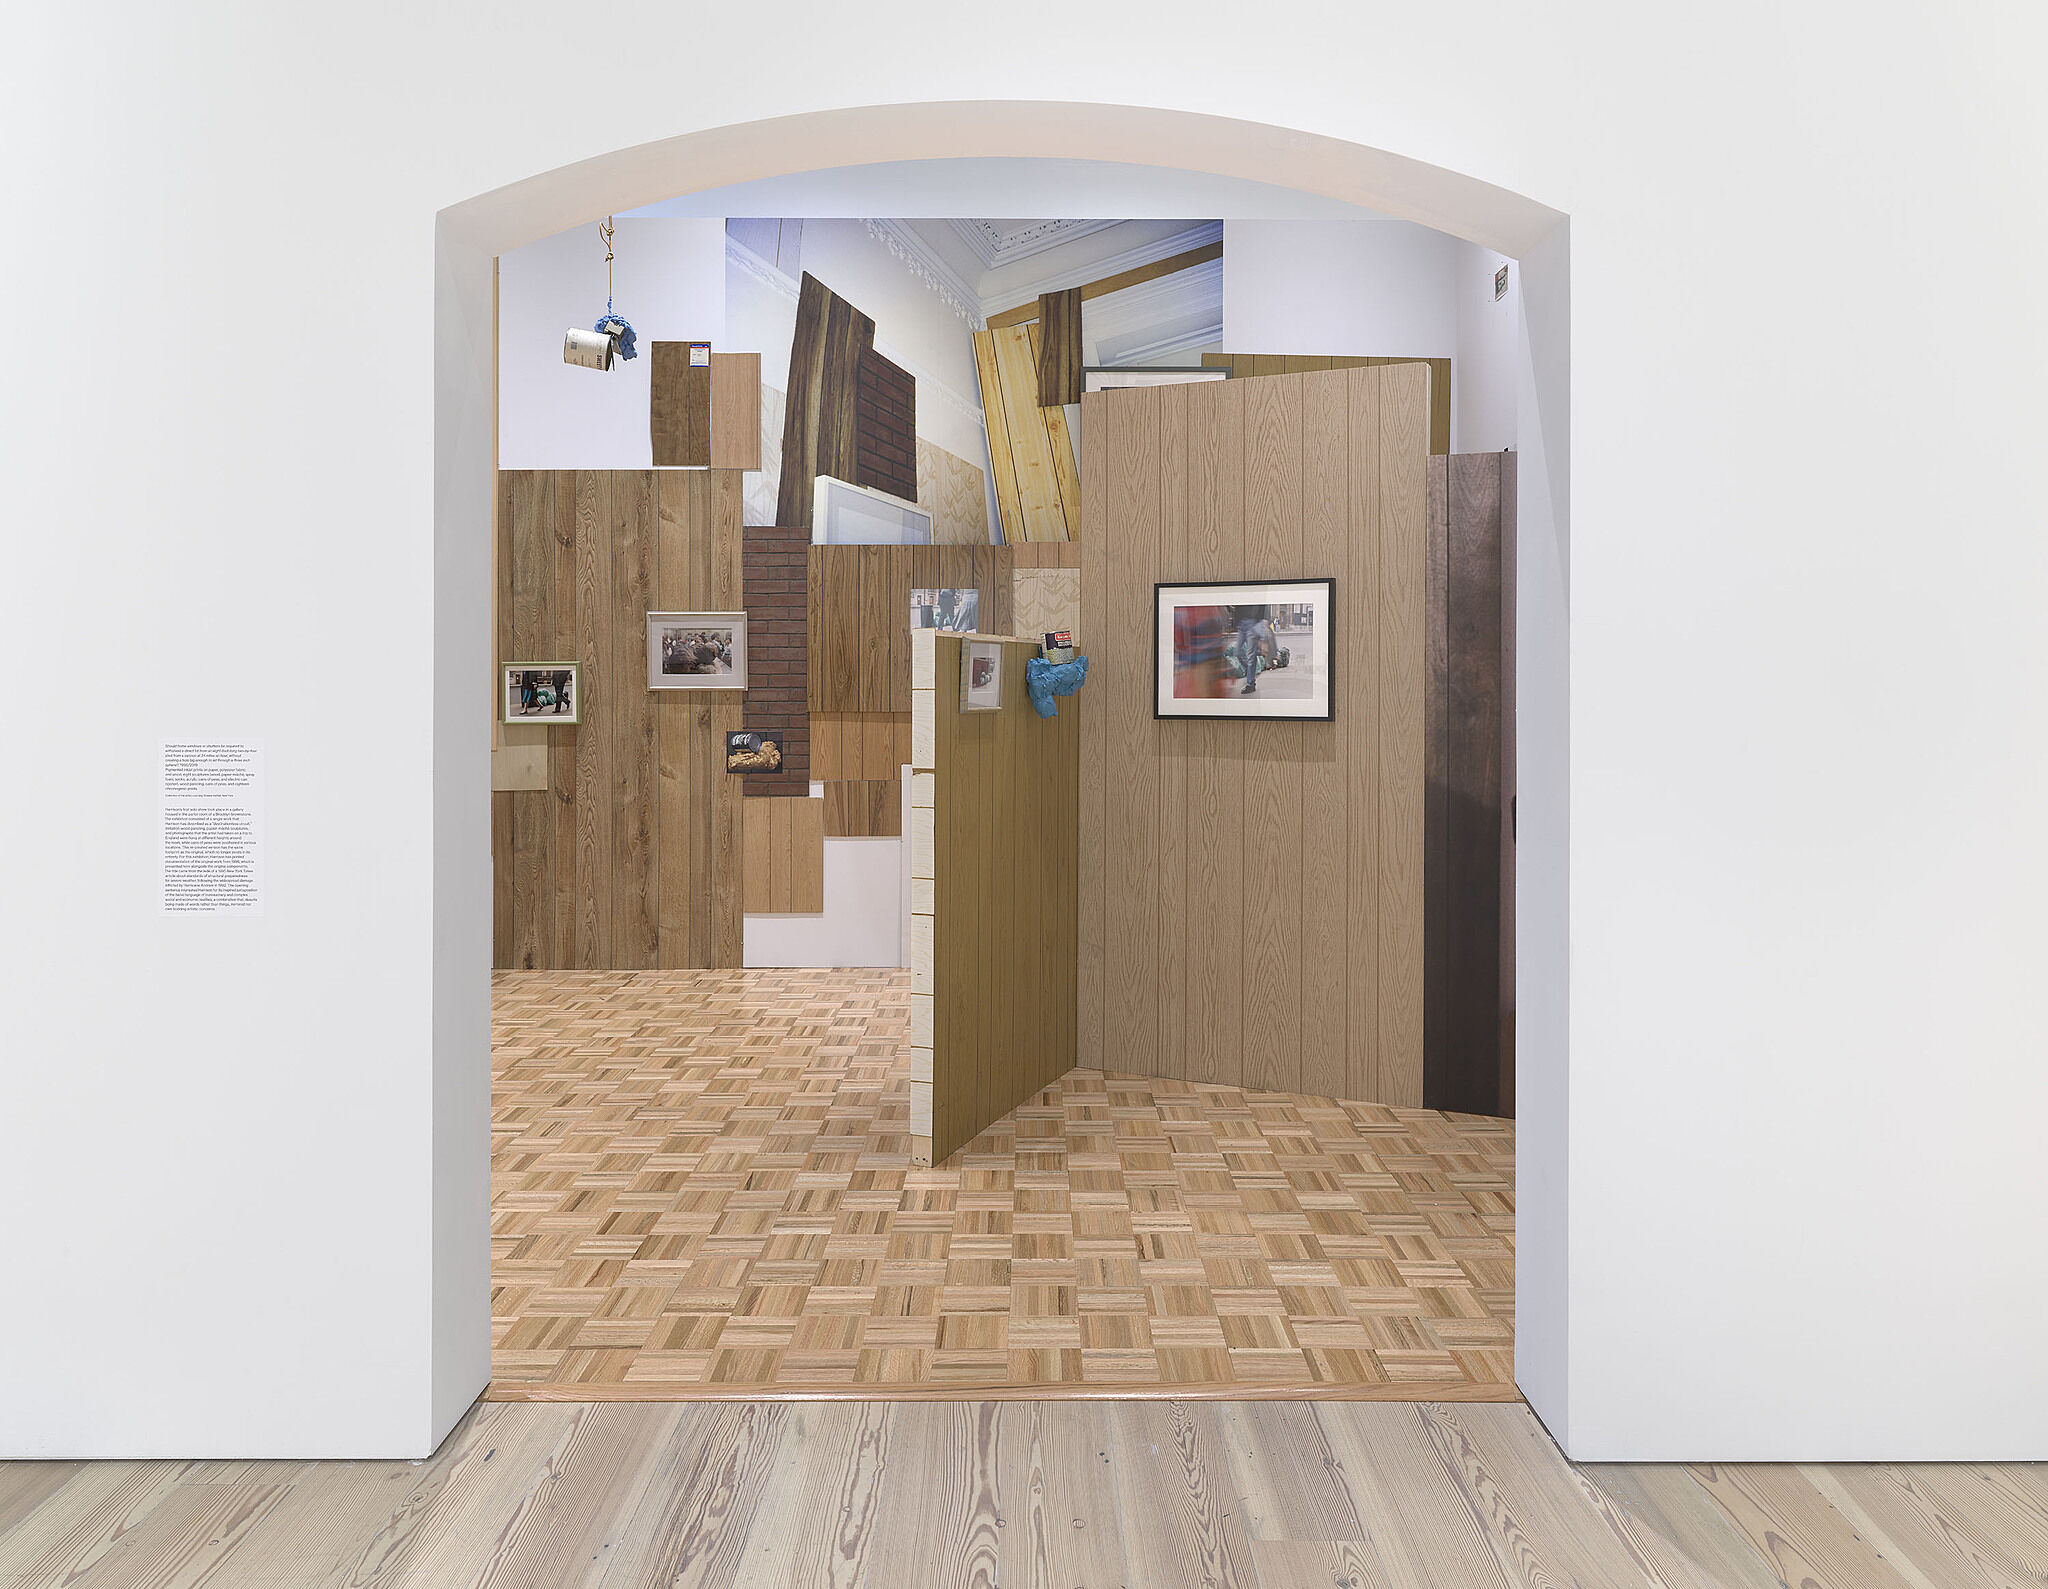 A gallery with fake wood walls, large photographs, and cans of peas.